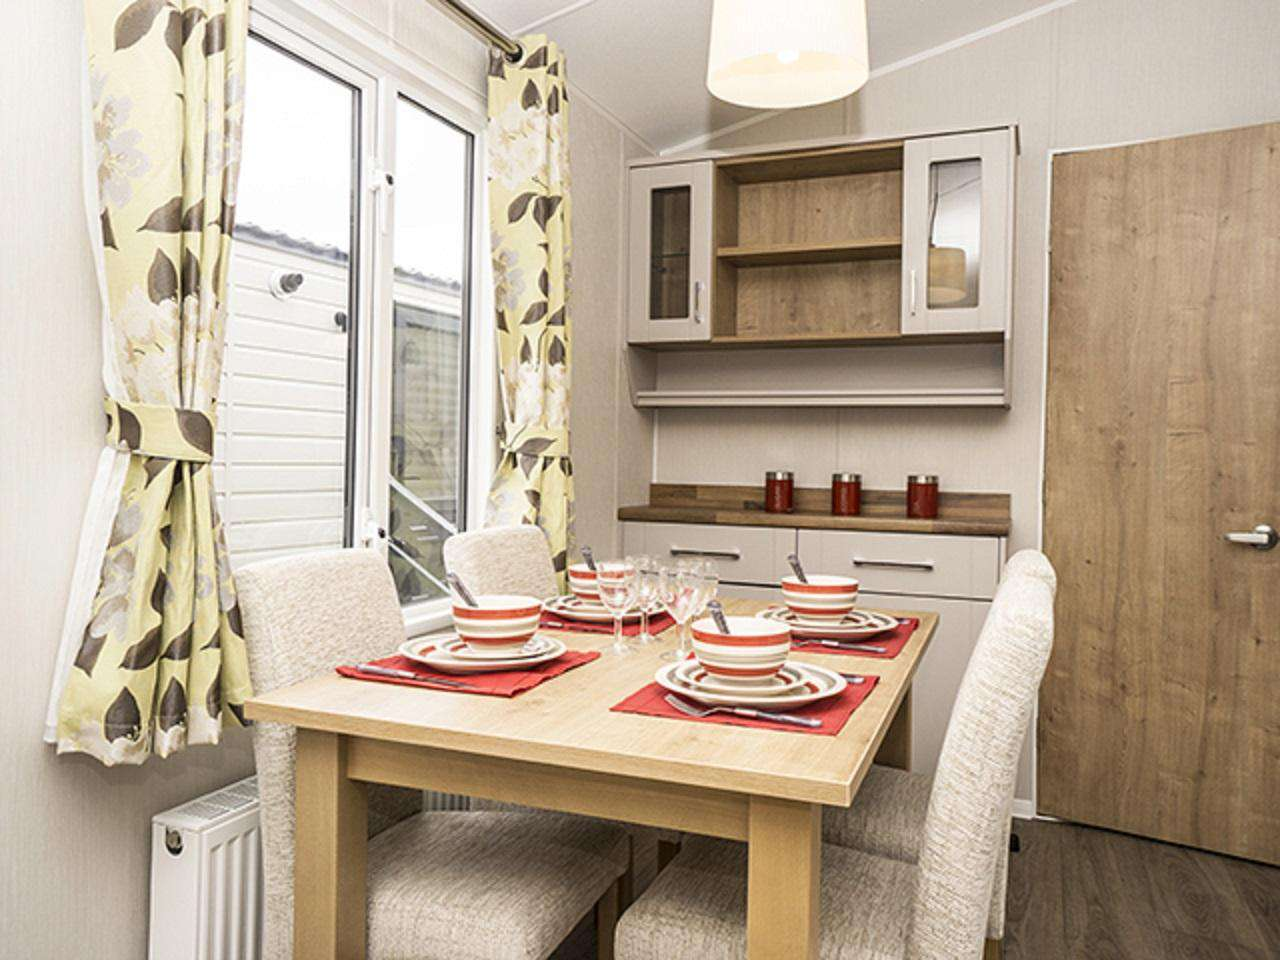 Perfect place to dine with family or friends in this self-catering accommodation!